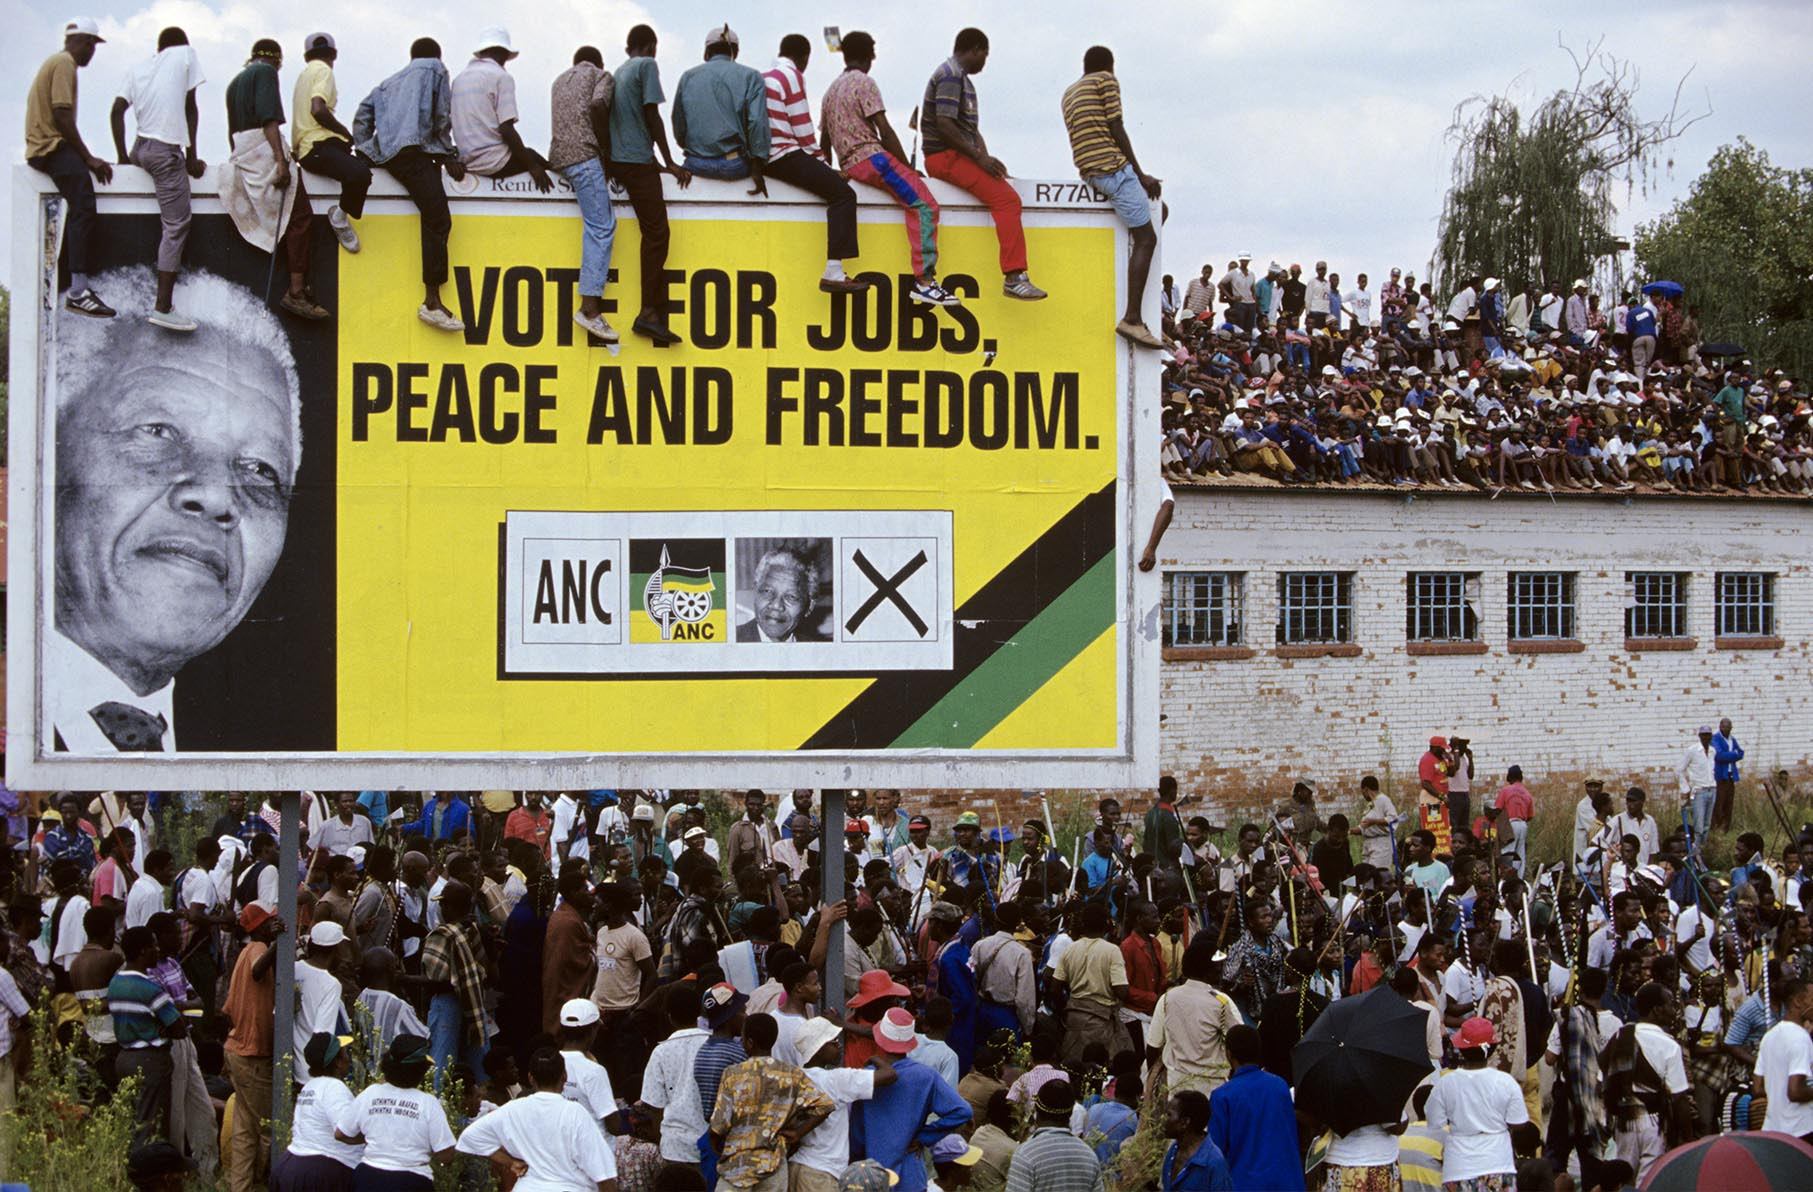 Supporters listen to Nelson Mandela at a campaign event.   After more then 27 years in jail as an anti-apartheid activist,   Nelson Mandela lead a 1994 campaign for President as a member of the African National Congress (ANC),  in the first free elections in South Africa in 1994.  Mandela has received more than 250 awards over four decades, including the 1993 Nobel Peace Prize.